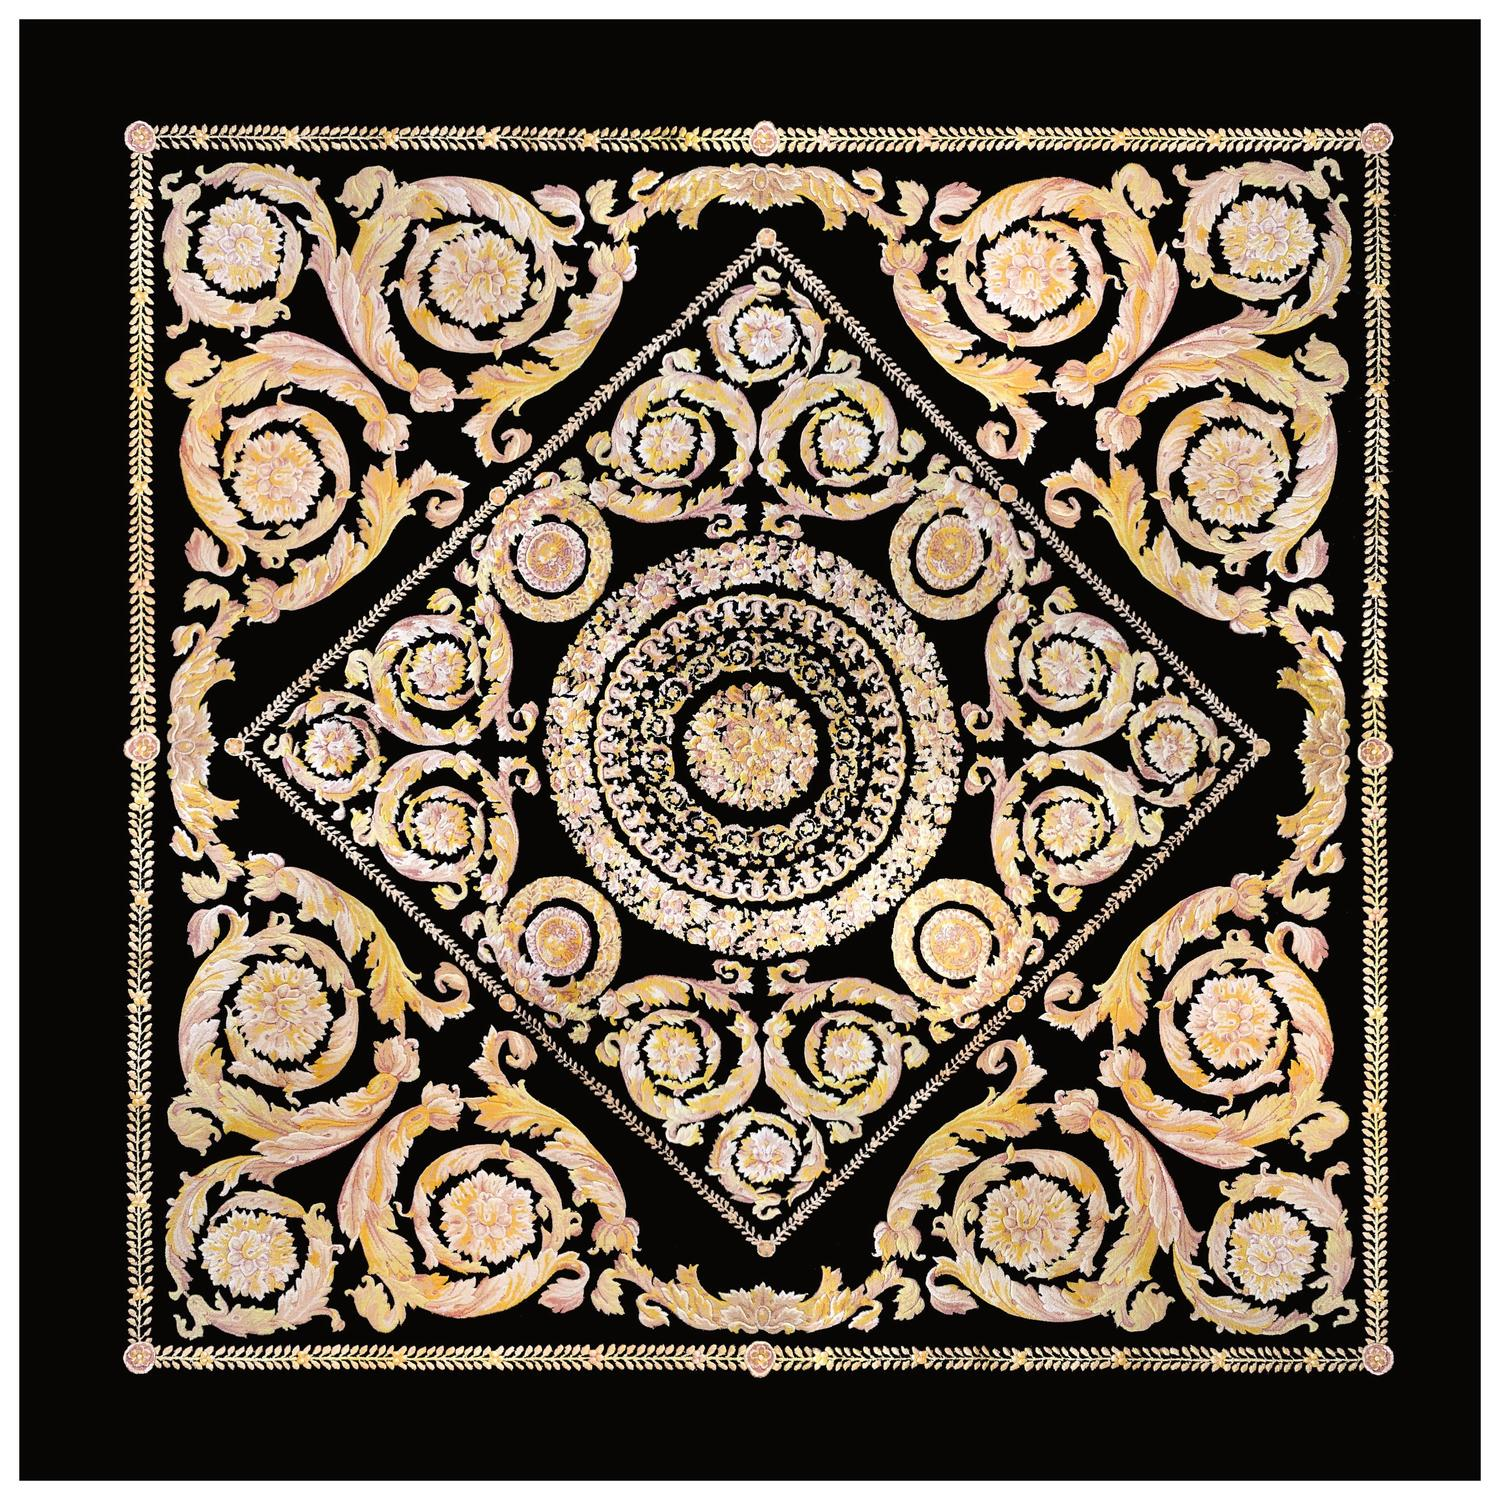 Western Inspired Rugs: Refined Contemporary Savonnerie Style Rug For Sale At 1stdibs